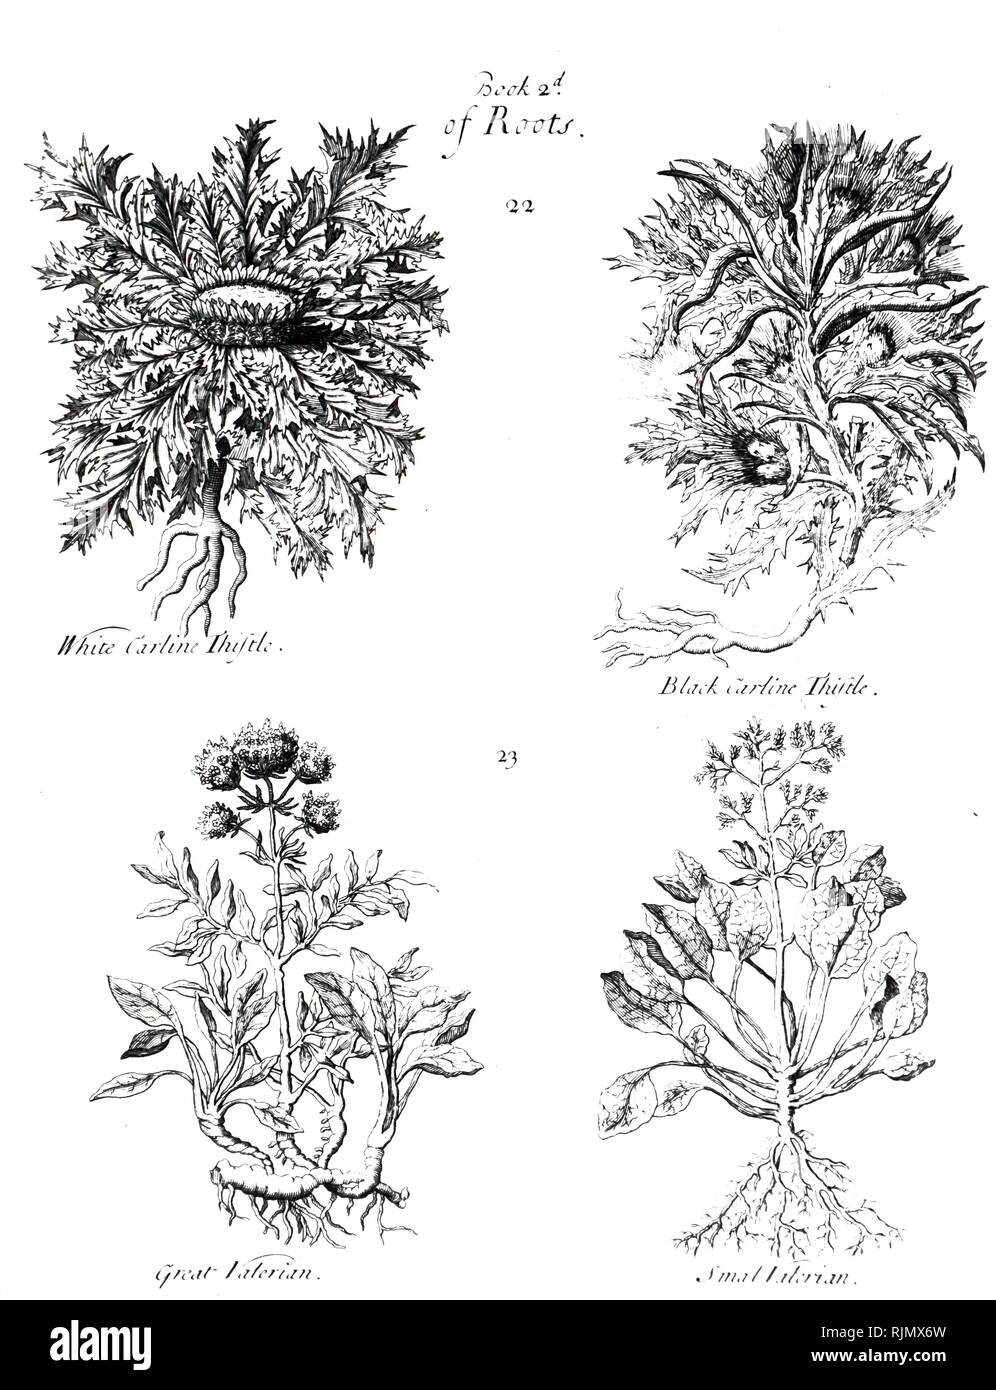 An engraving depicting White Caraline Thistle: Root used medicinally against the Plague. Revealed to Charlemagne by an angel and used to treat his army. BLACK CARLINE THISTLE Similar, but not as efficacious. GREAT VALERIAN Seeds and leaves dried and used medicinally. From P. Pomet 'A Compleat History of Drugs' 1725 - Stock Image